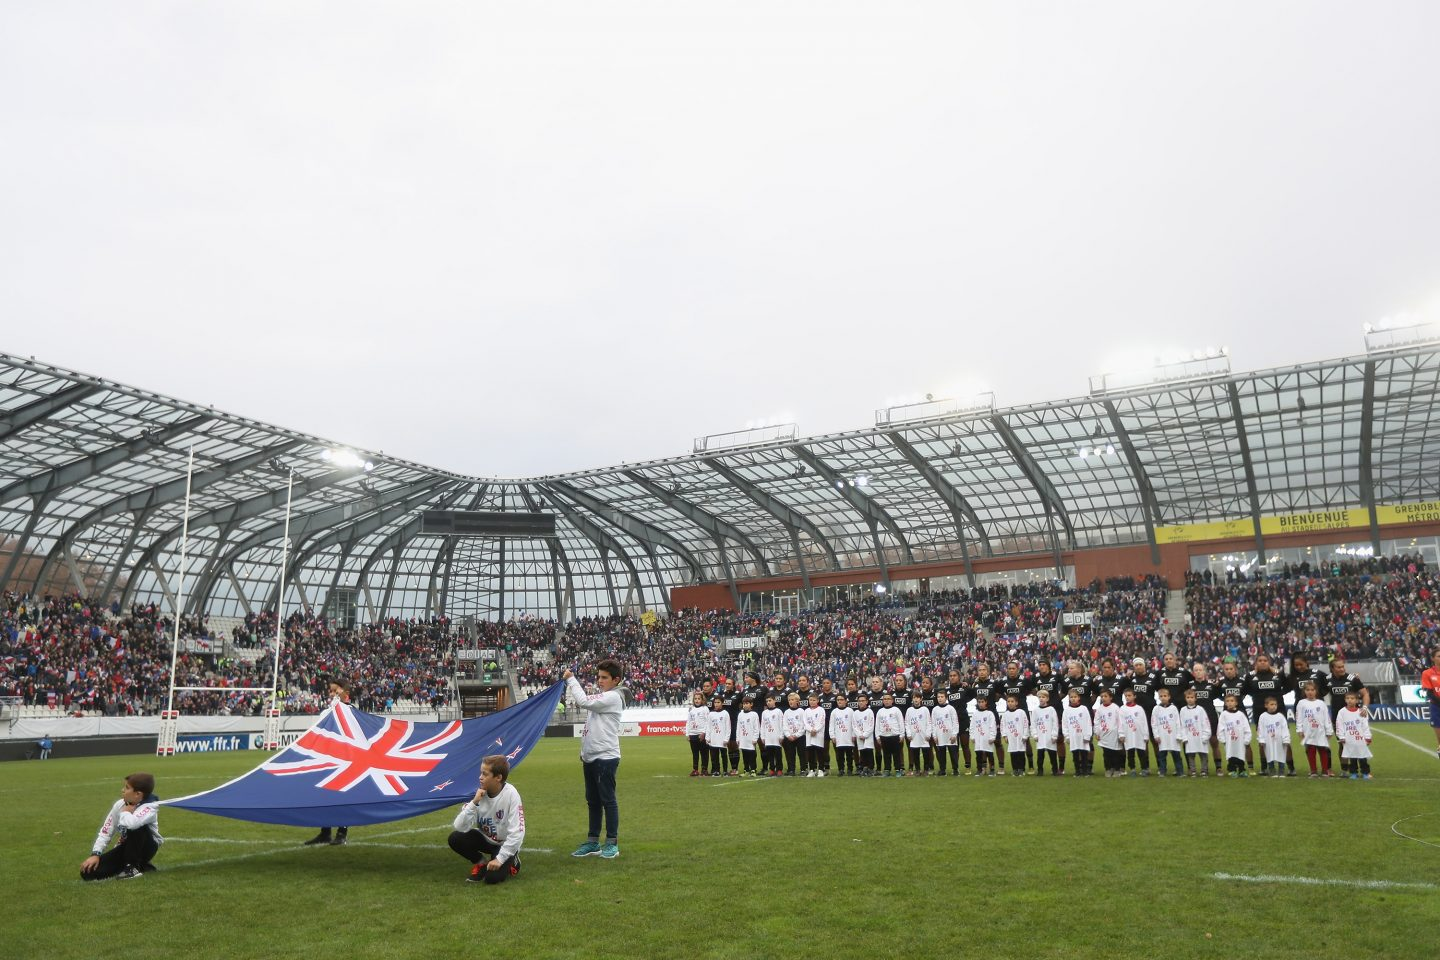 GRENOBLE, FRANCE - NOVEMBER 17: The Black Ferns stand for their National Anthem during the Womens International match between France Women and the Black Ferns at the Stade des Alpes on November 17, 2018 in Grenoble, France.   women's rugby